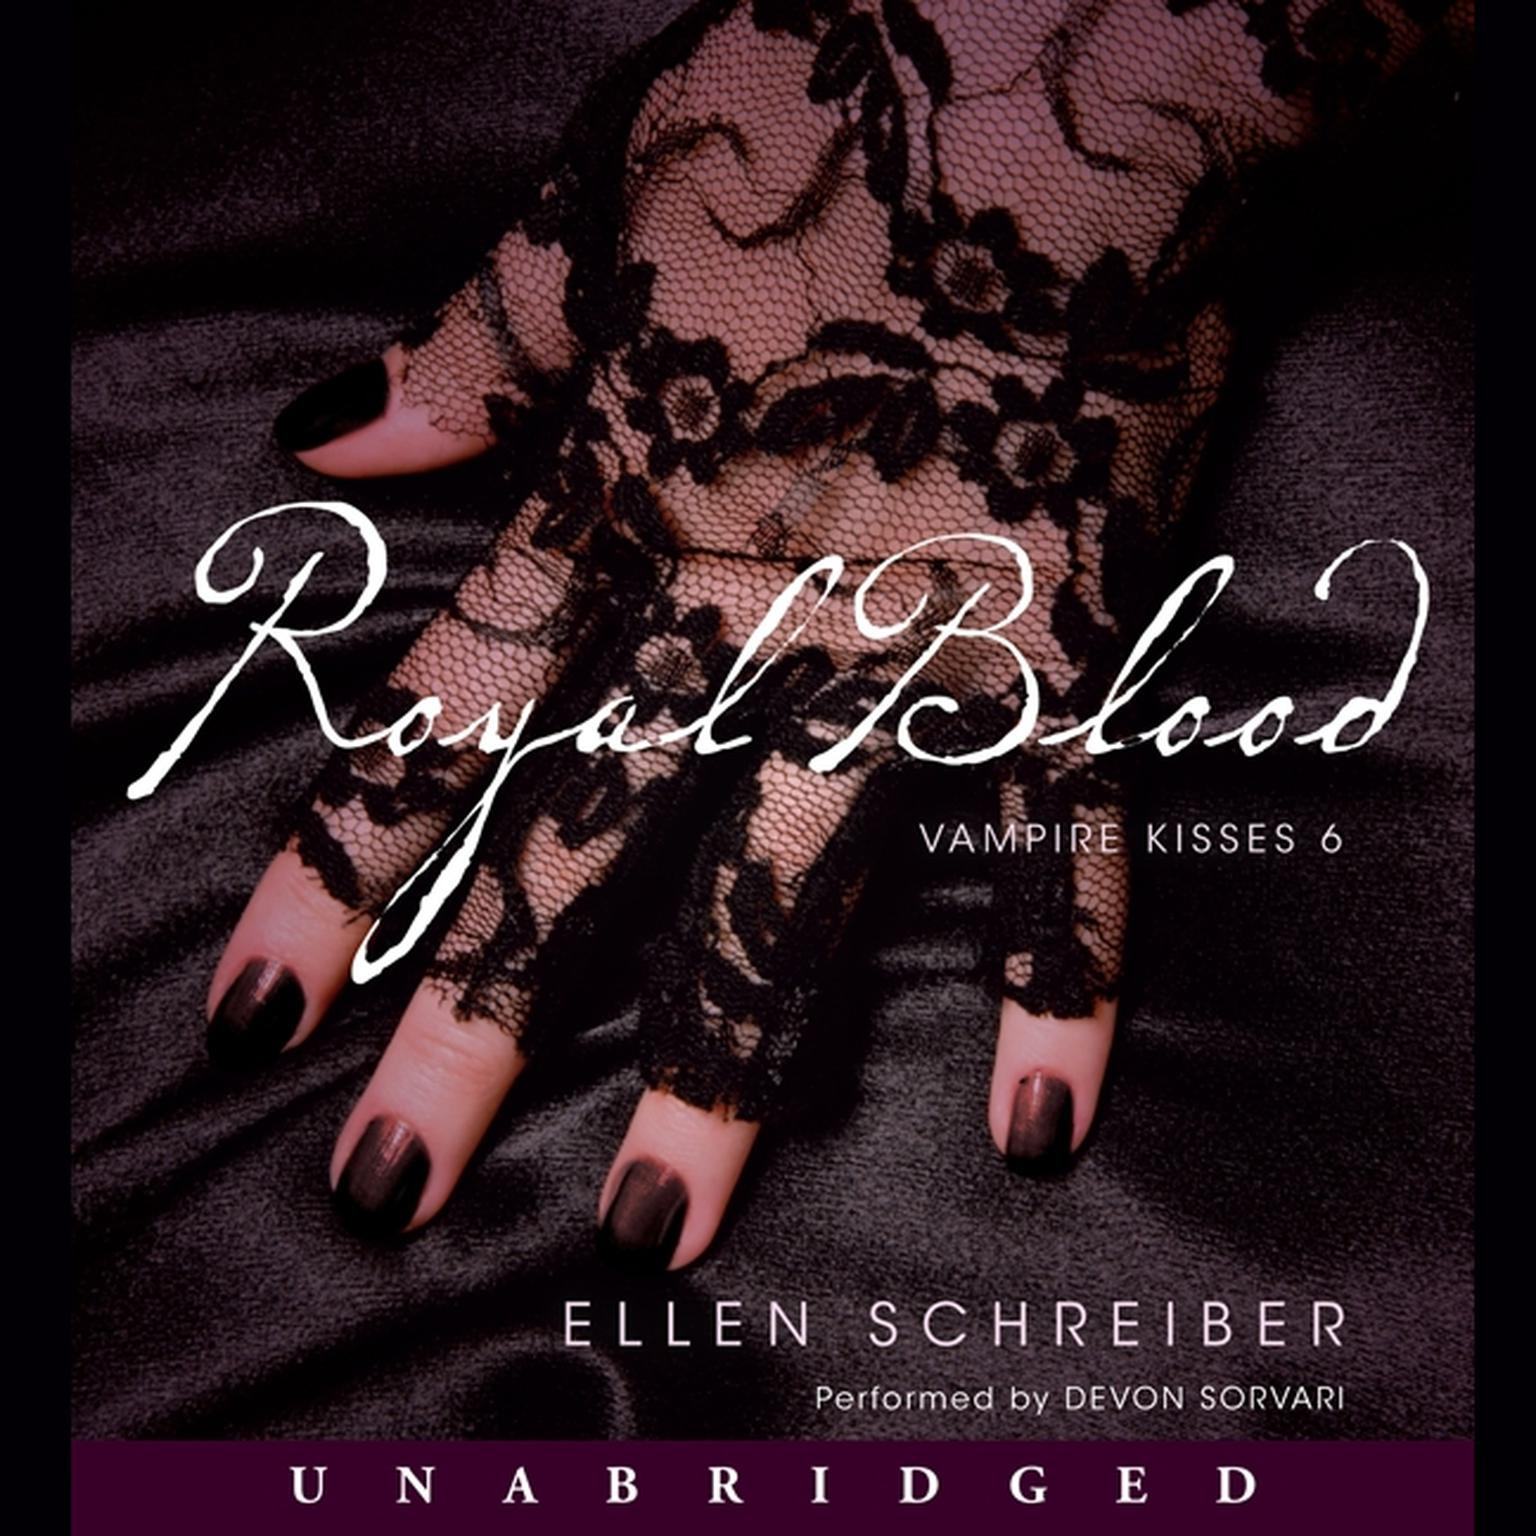 Printable Vampire Kisses 6: Royal Blood: A Vampire Kisses Novel Audiobook Cover Art